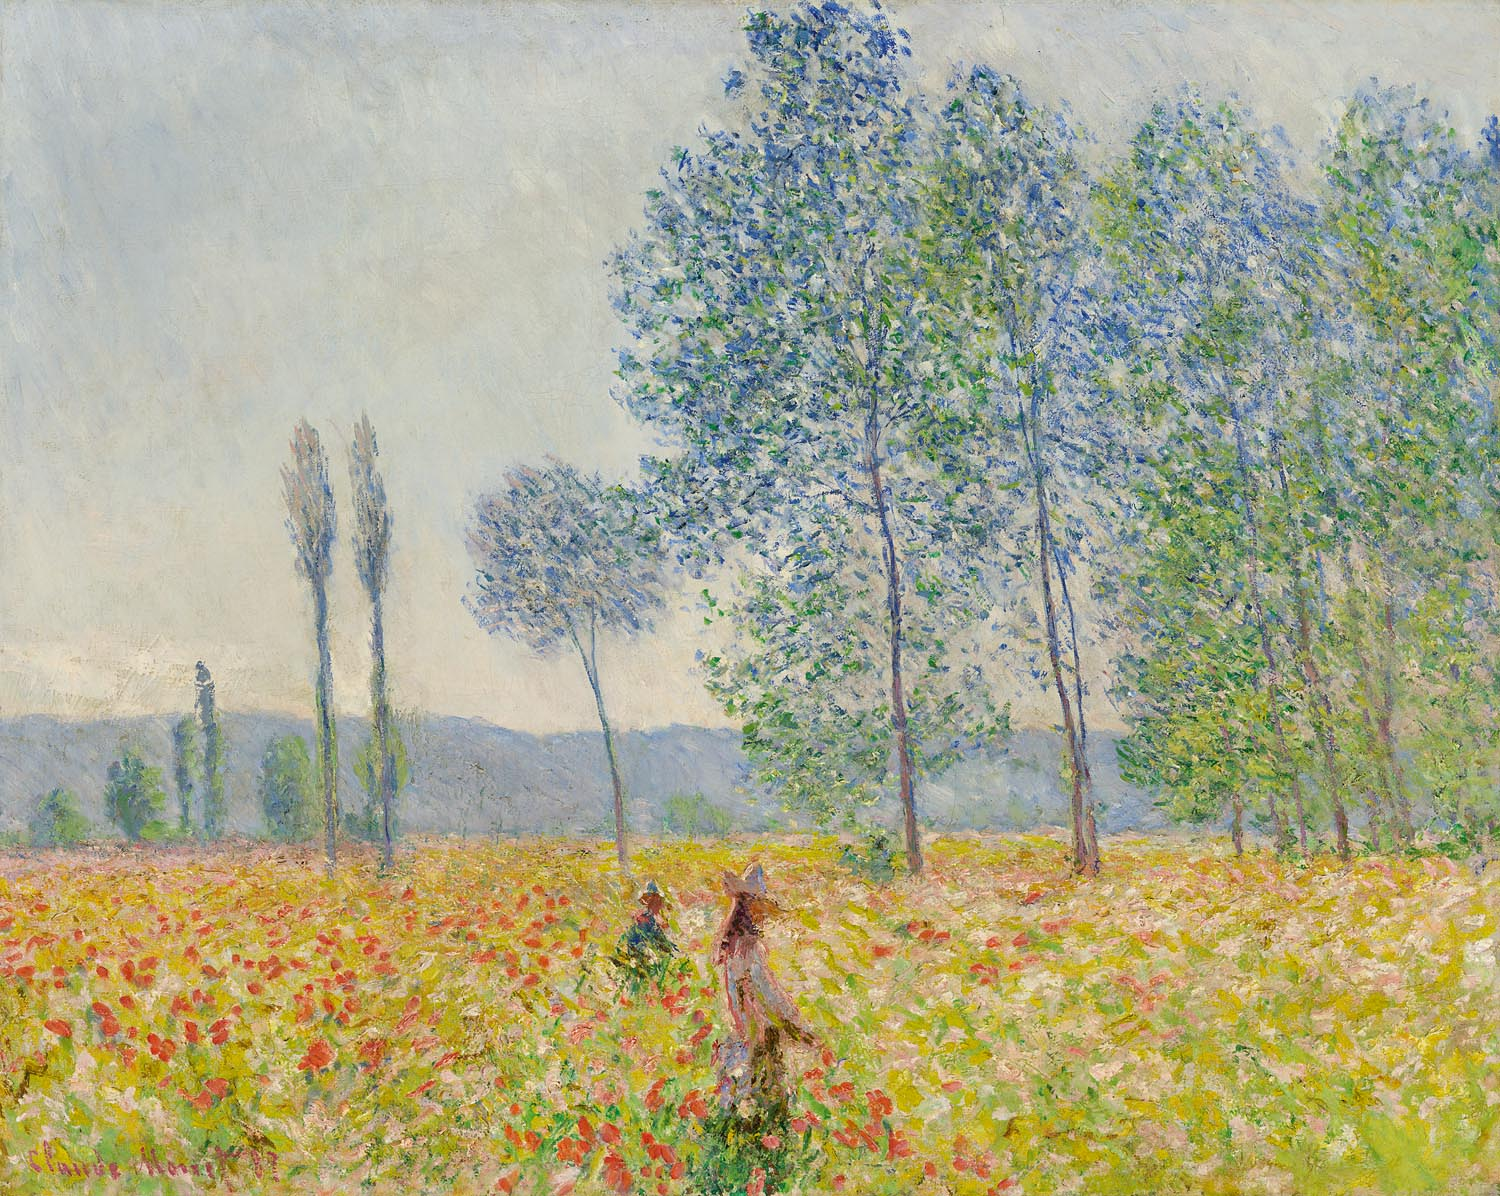 Claude Monet: Under the Poplars, 1887, private collection, Scan: RECOM ART